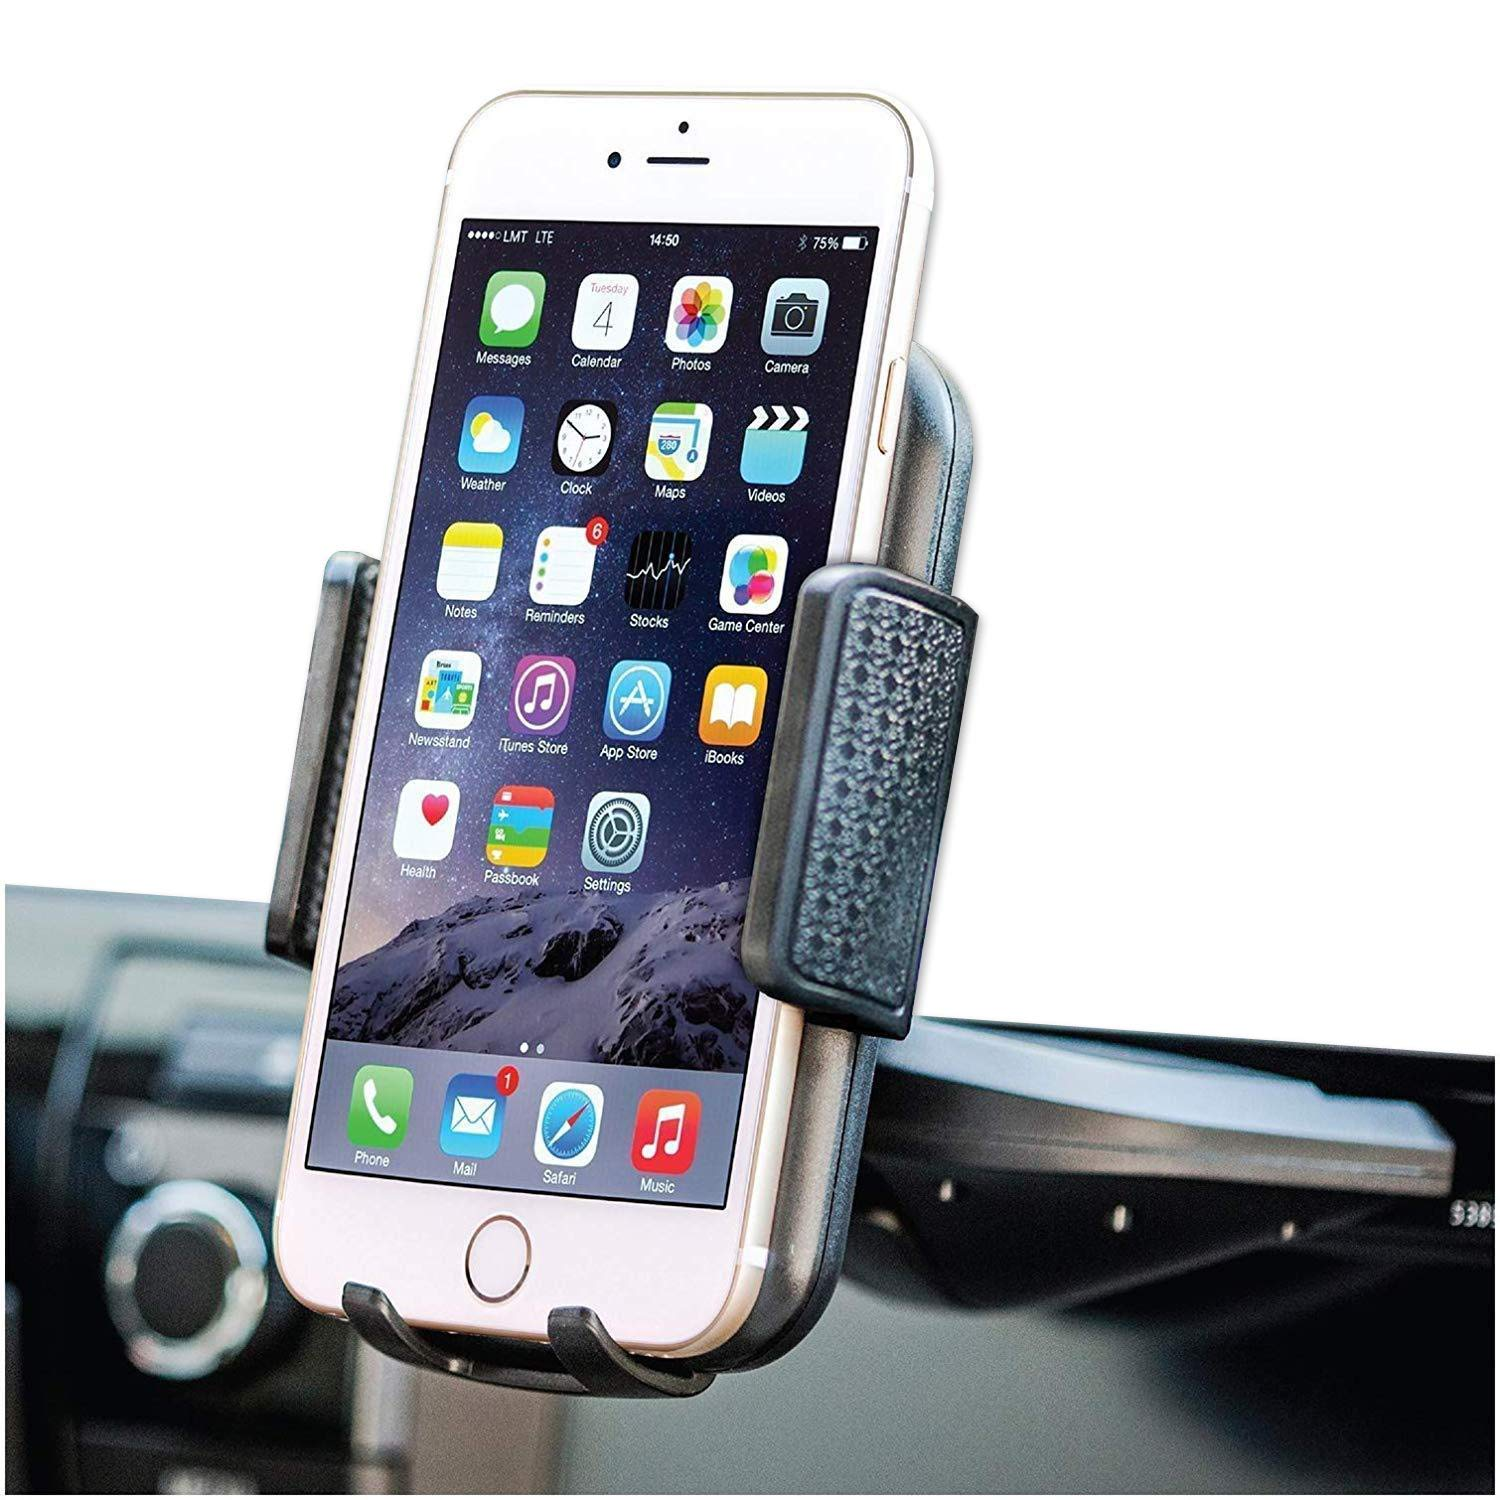 """Bestrix Universal CD Slot Phone Holder for Car Ideal for iPhone X, 8, 7, 6, 6S Plus. 5S, 5C, 5, Samsung Galaxy S5, S6, S7, S8, Edge/Plus Note 4,5,8, LG G4, G5, G6, All Smartphones up to 6"""""""